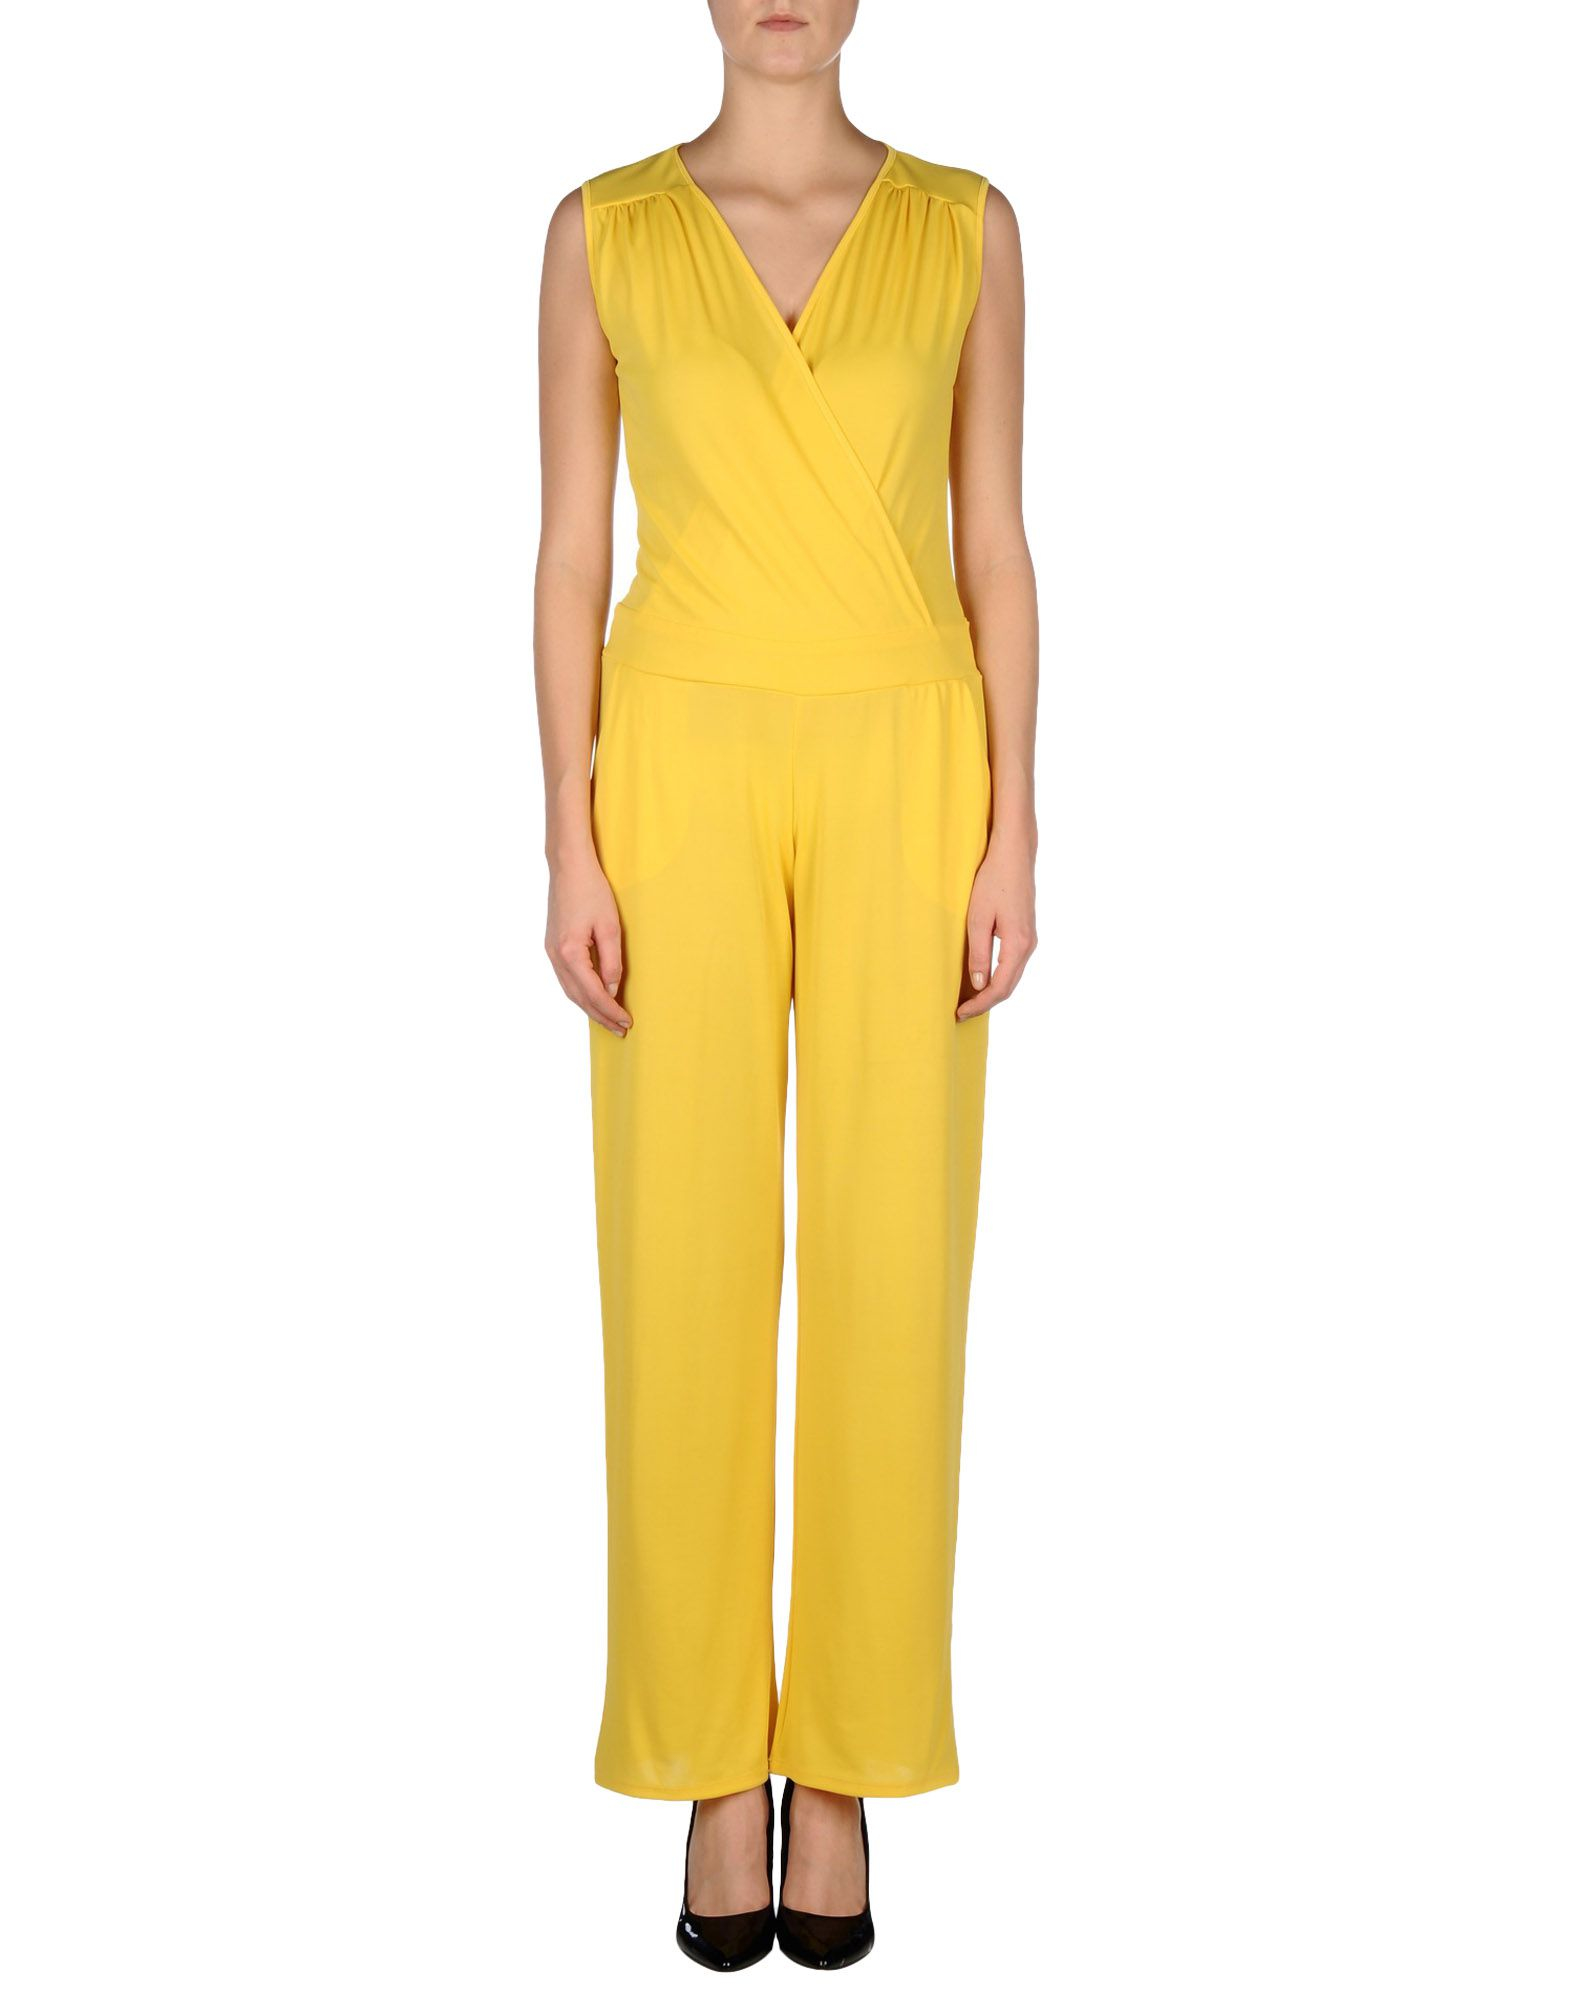 Original 17 Best Ideas About Yellow Jumpsuit On Pinterest  Jumpsuits Yellow